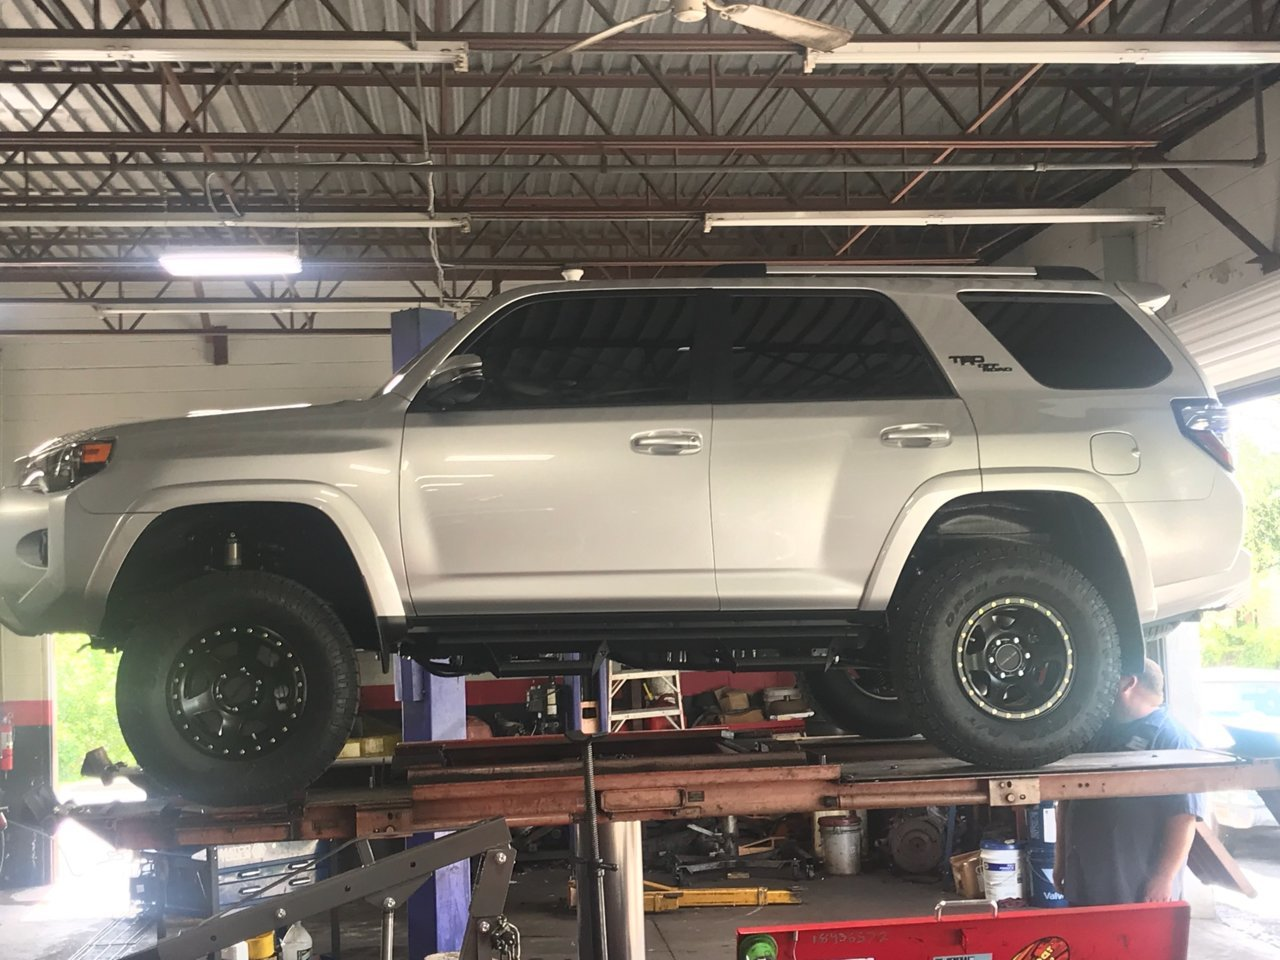 2018 4Runner - Lift installed.jpg